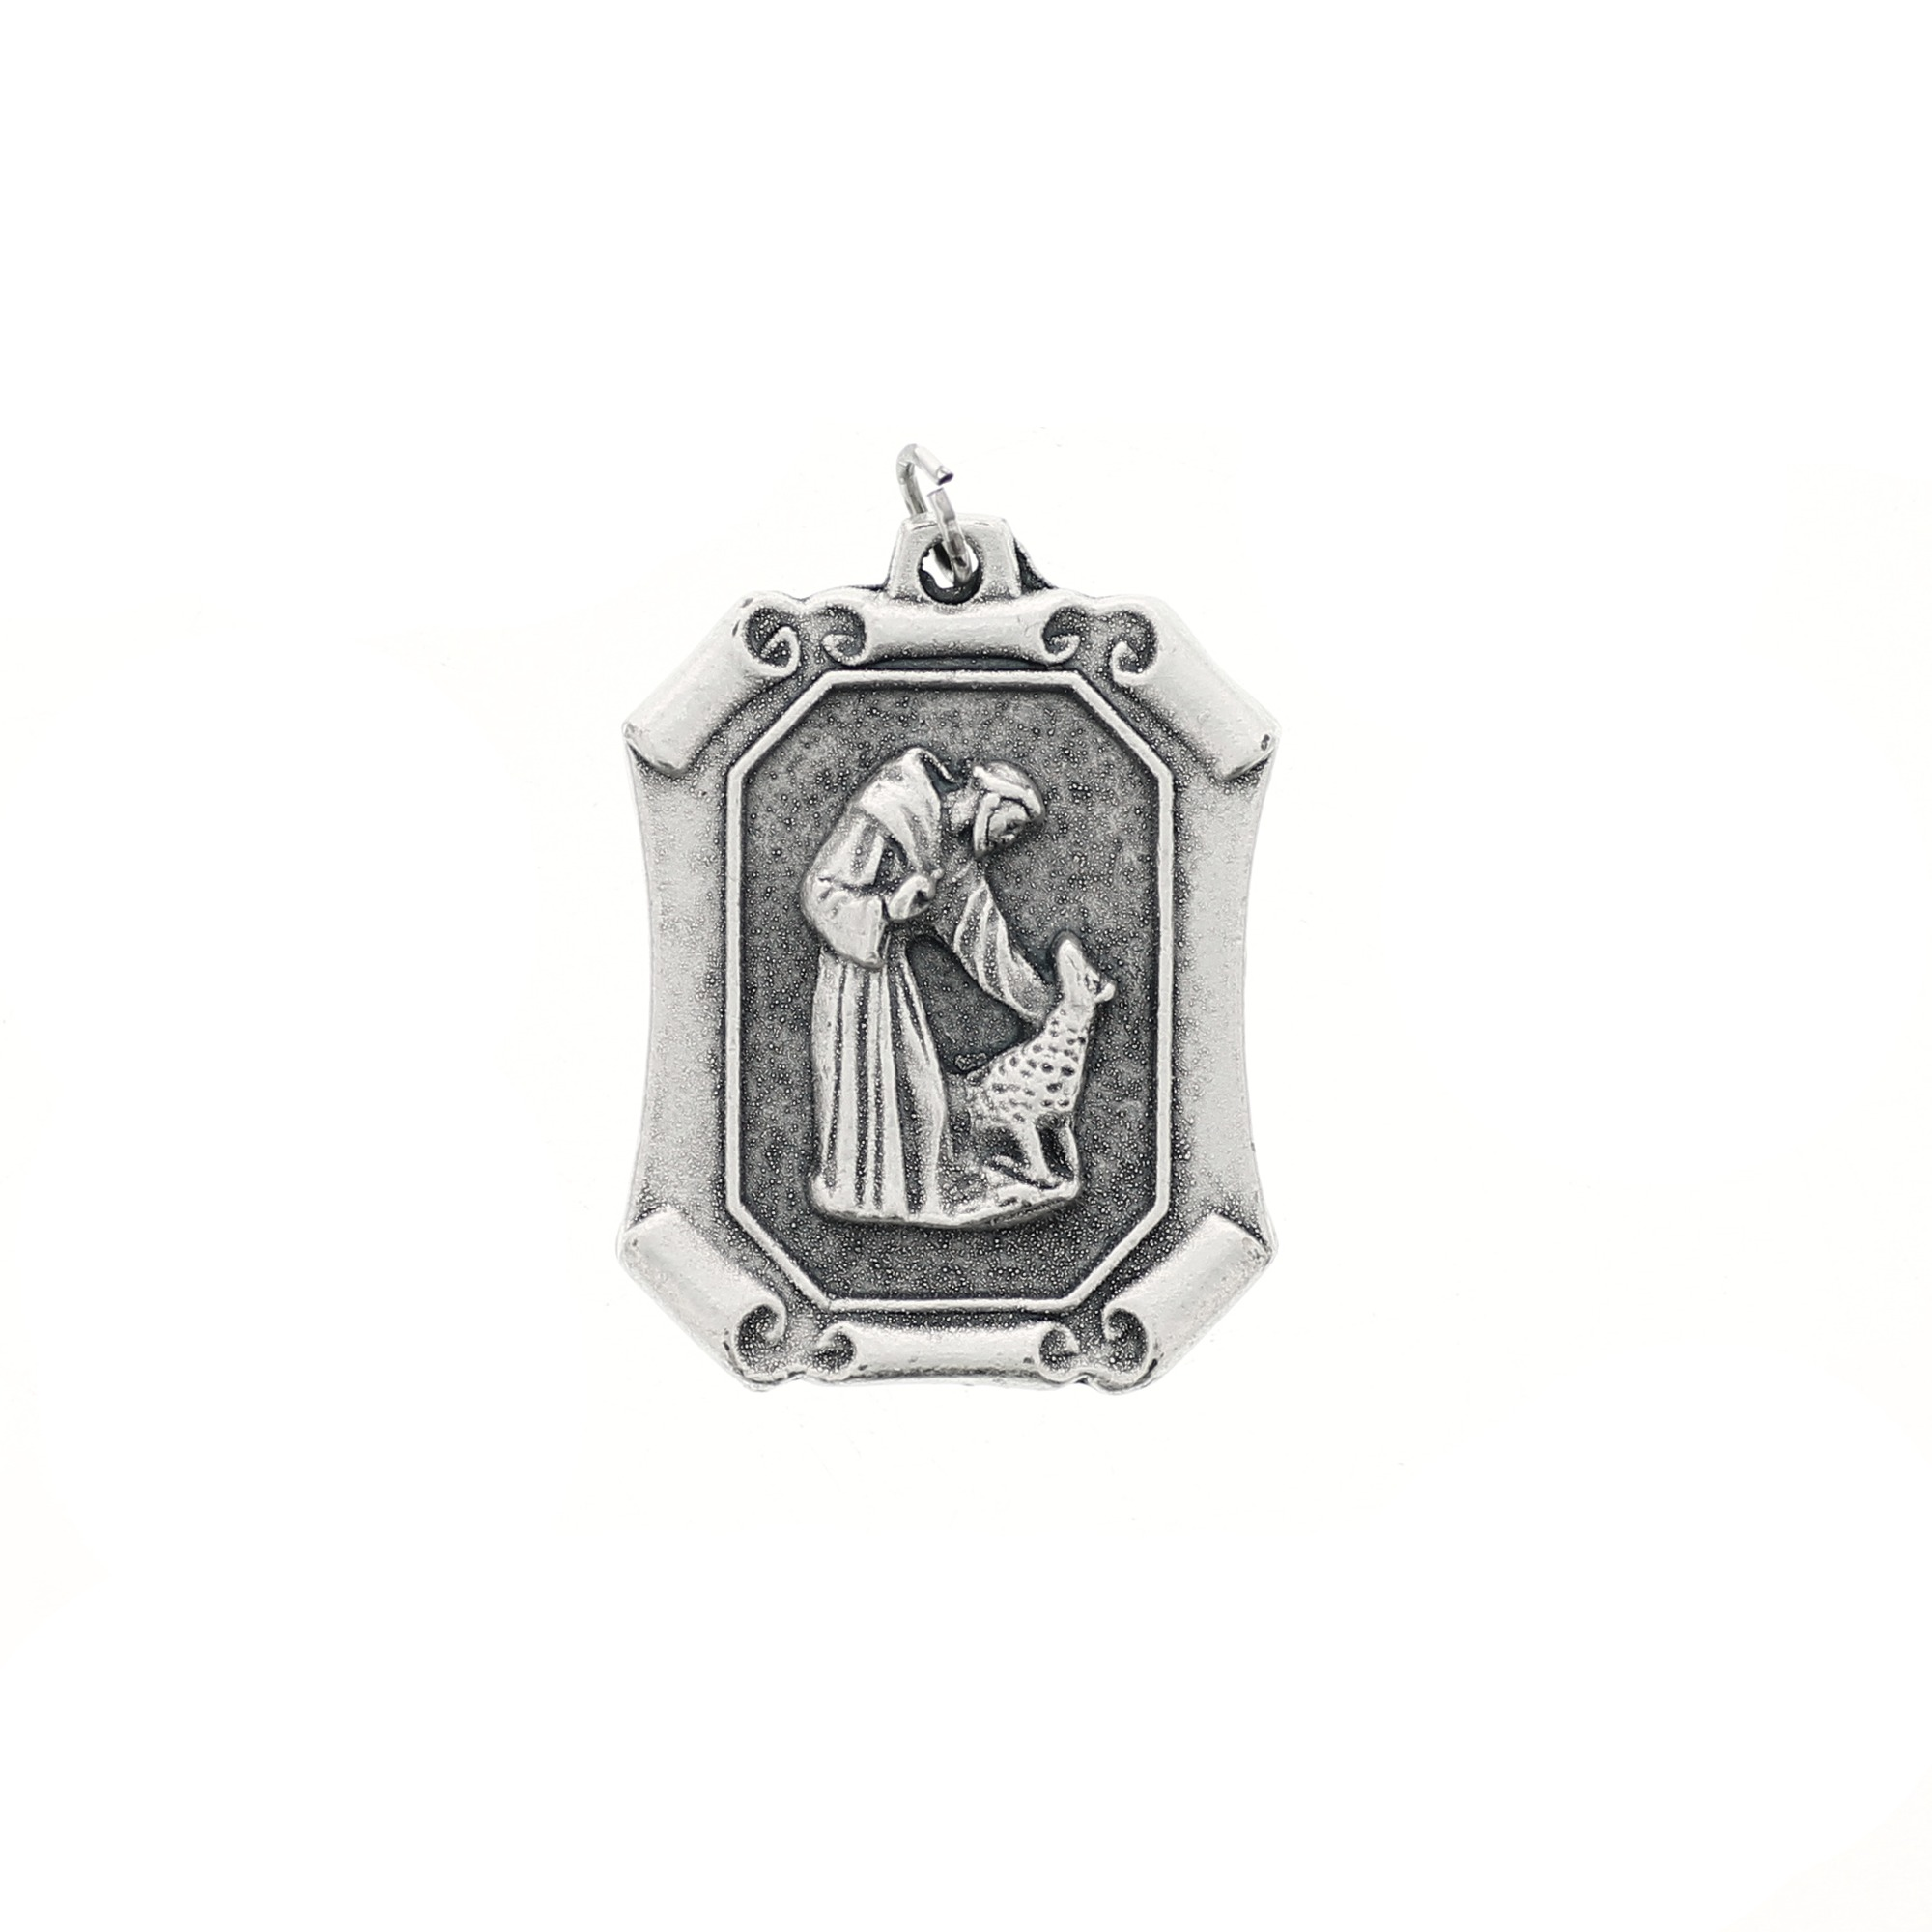 travel religious necklace in st wholesale shape jewelry protect christopher charms saint my pendant charm medal protection on accessories medallion item catholic from us